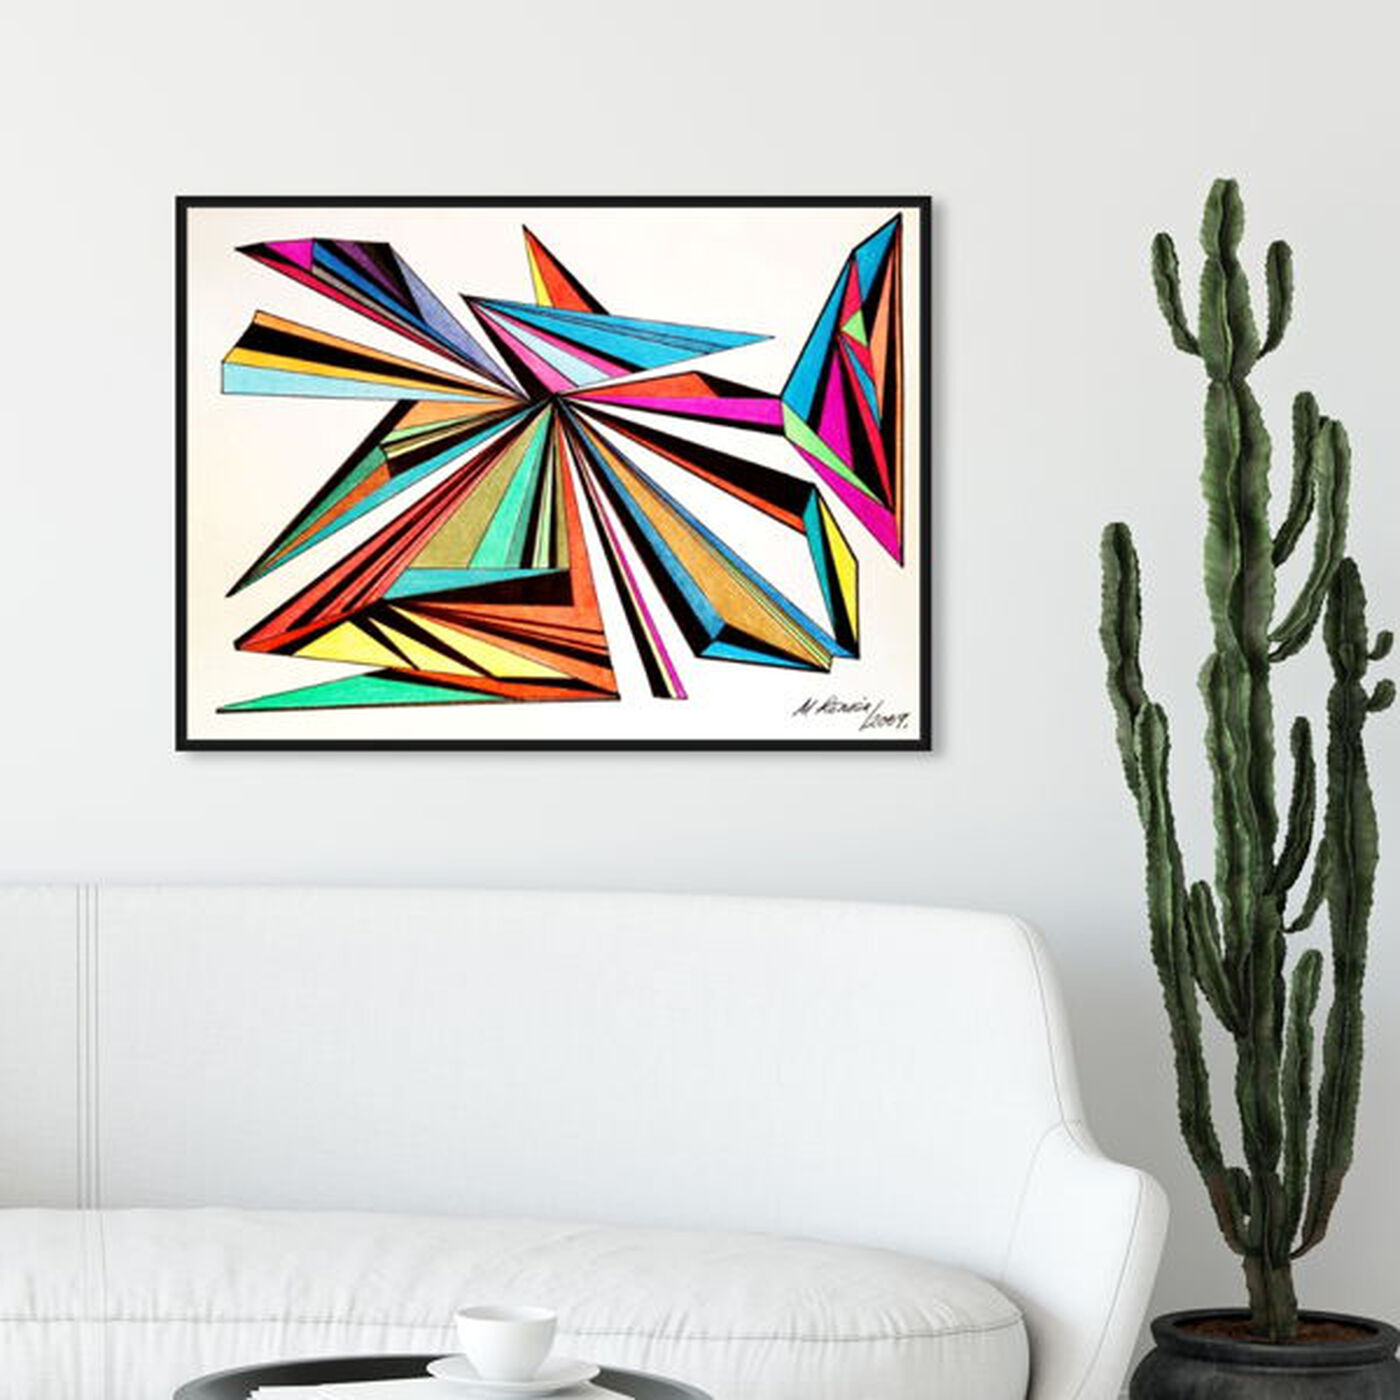 Hanging view of Architecta featuring abstract and geometric art.